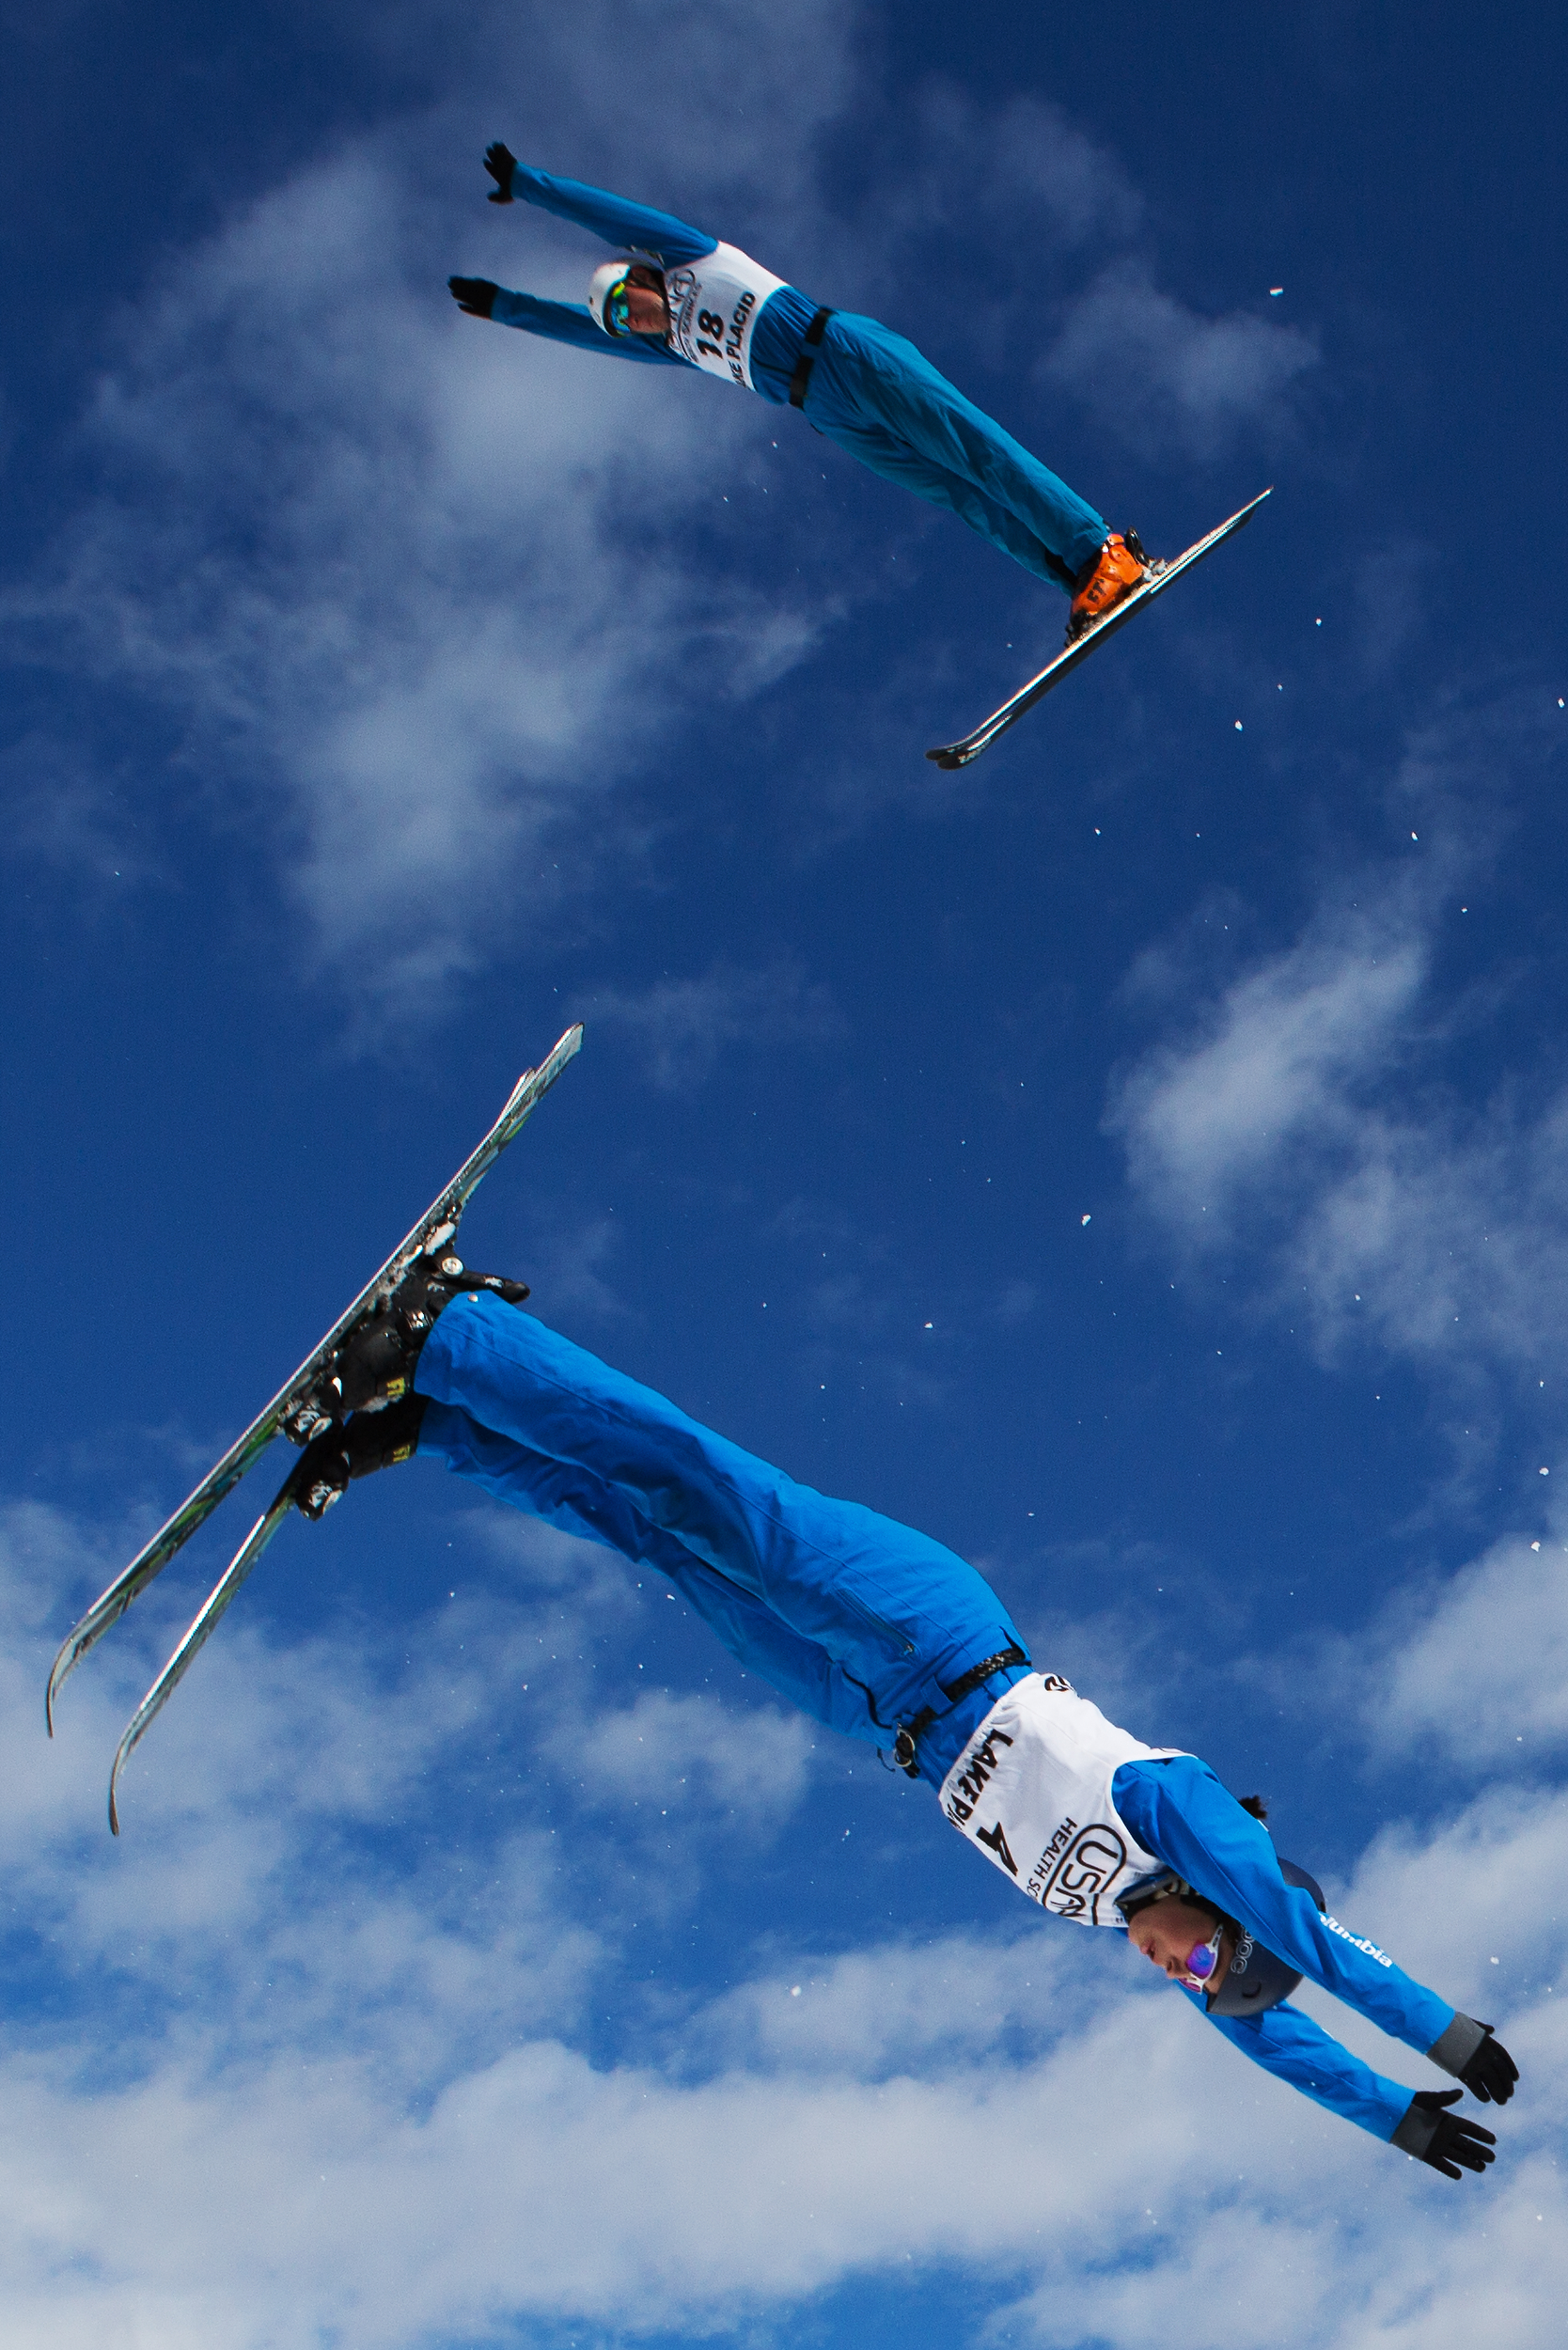 USA's Justin Schoenefeld, top, and Megan Smallhouse participate in training at the NorAm freestyle aerial competition at Lake Placid Olympic Ski Jumping Complex in Lake Placid, N.Y. on Feb. 19, 2017. Schoenefeld placed 13th in the mens division with a score of 53.23	 and Smallhouse places second in the women's division with a score of 52.20. (Bryan Bennett)